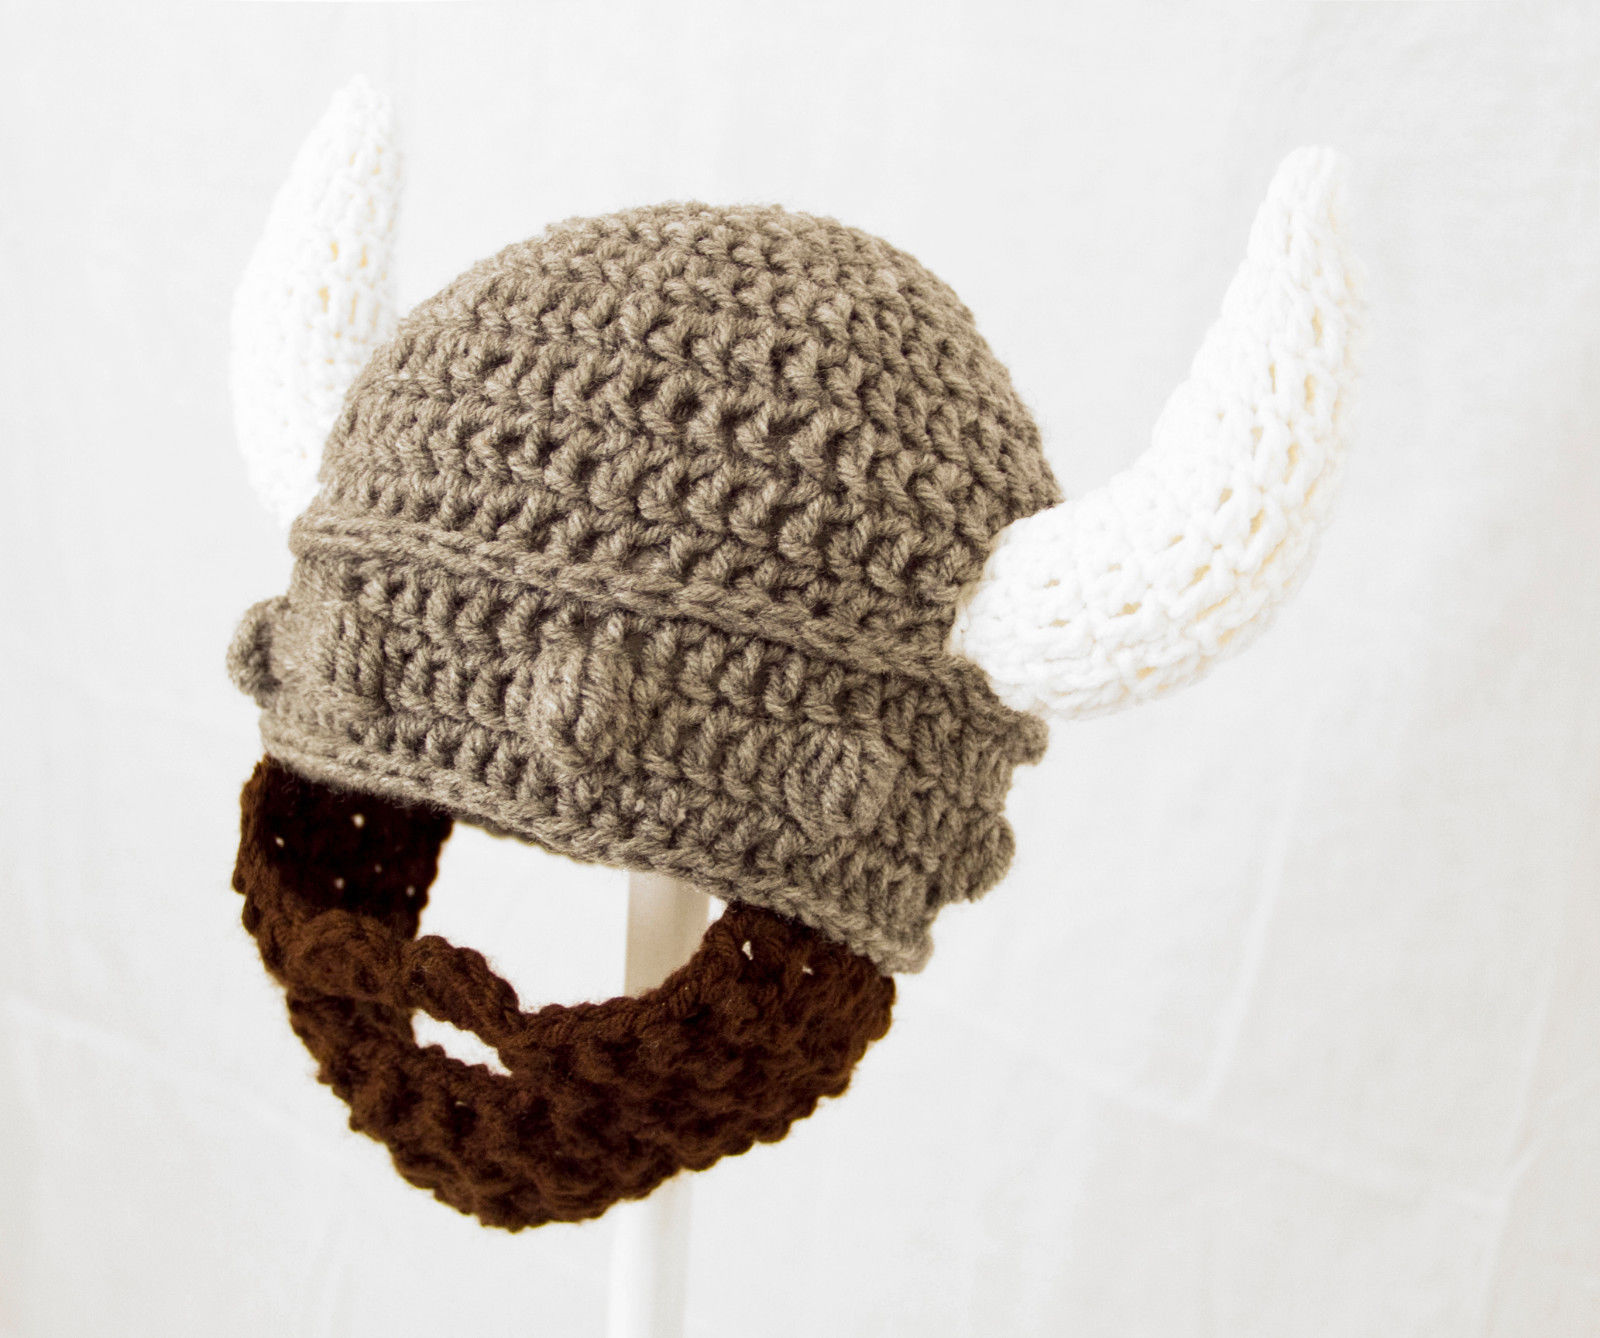 Free Knitting Patterns For Baby Toys : Viking Beard Hat, Gray Helmet Knit / Crochet Beard Beanie baby-adult - Hats